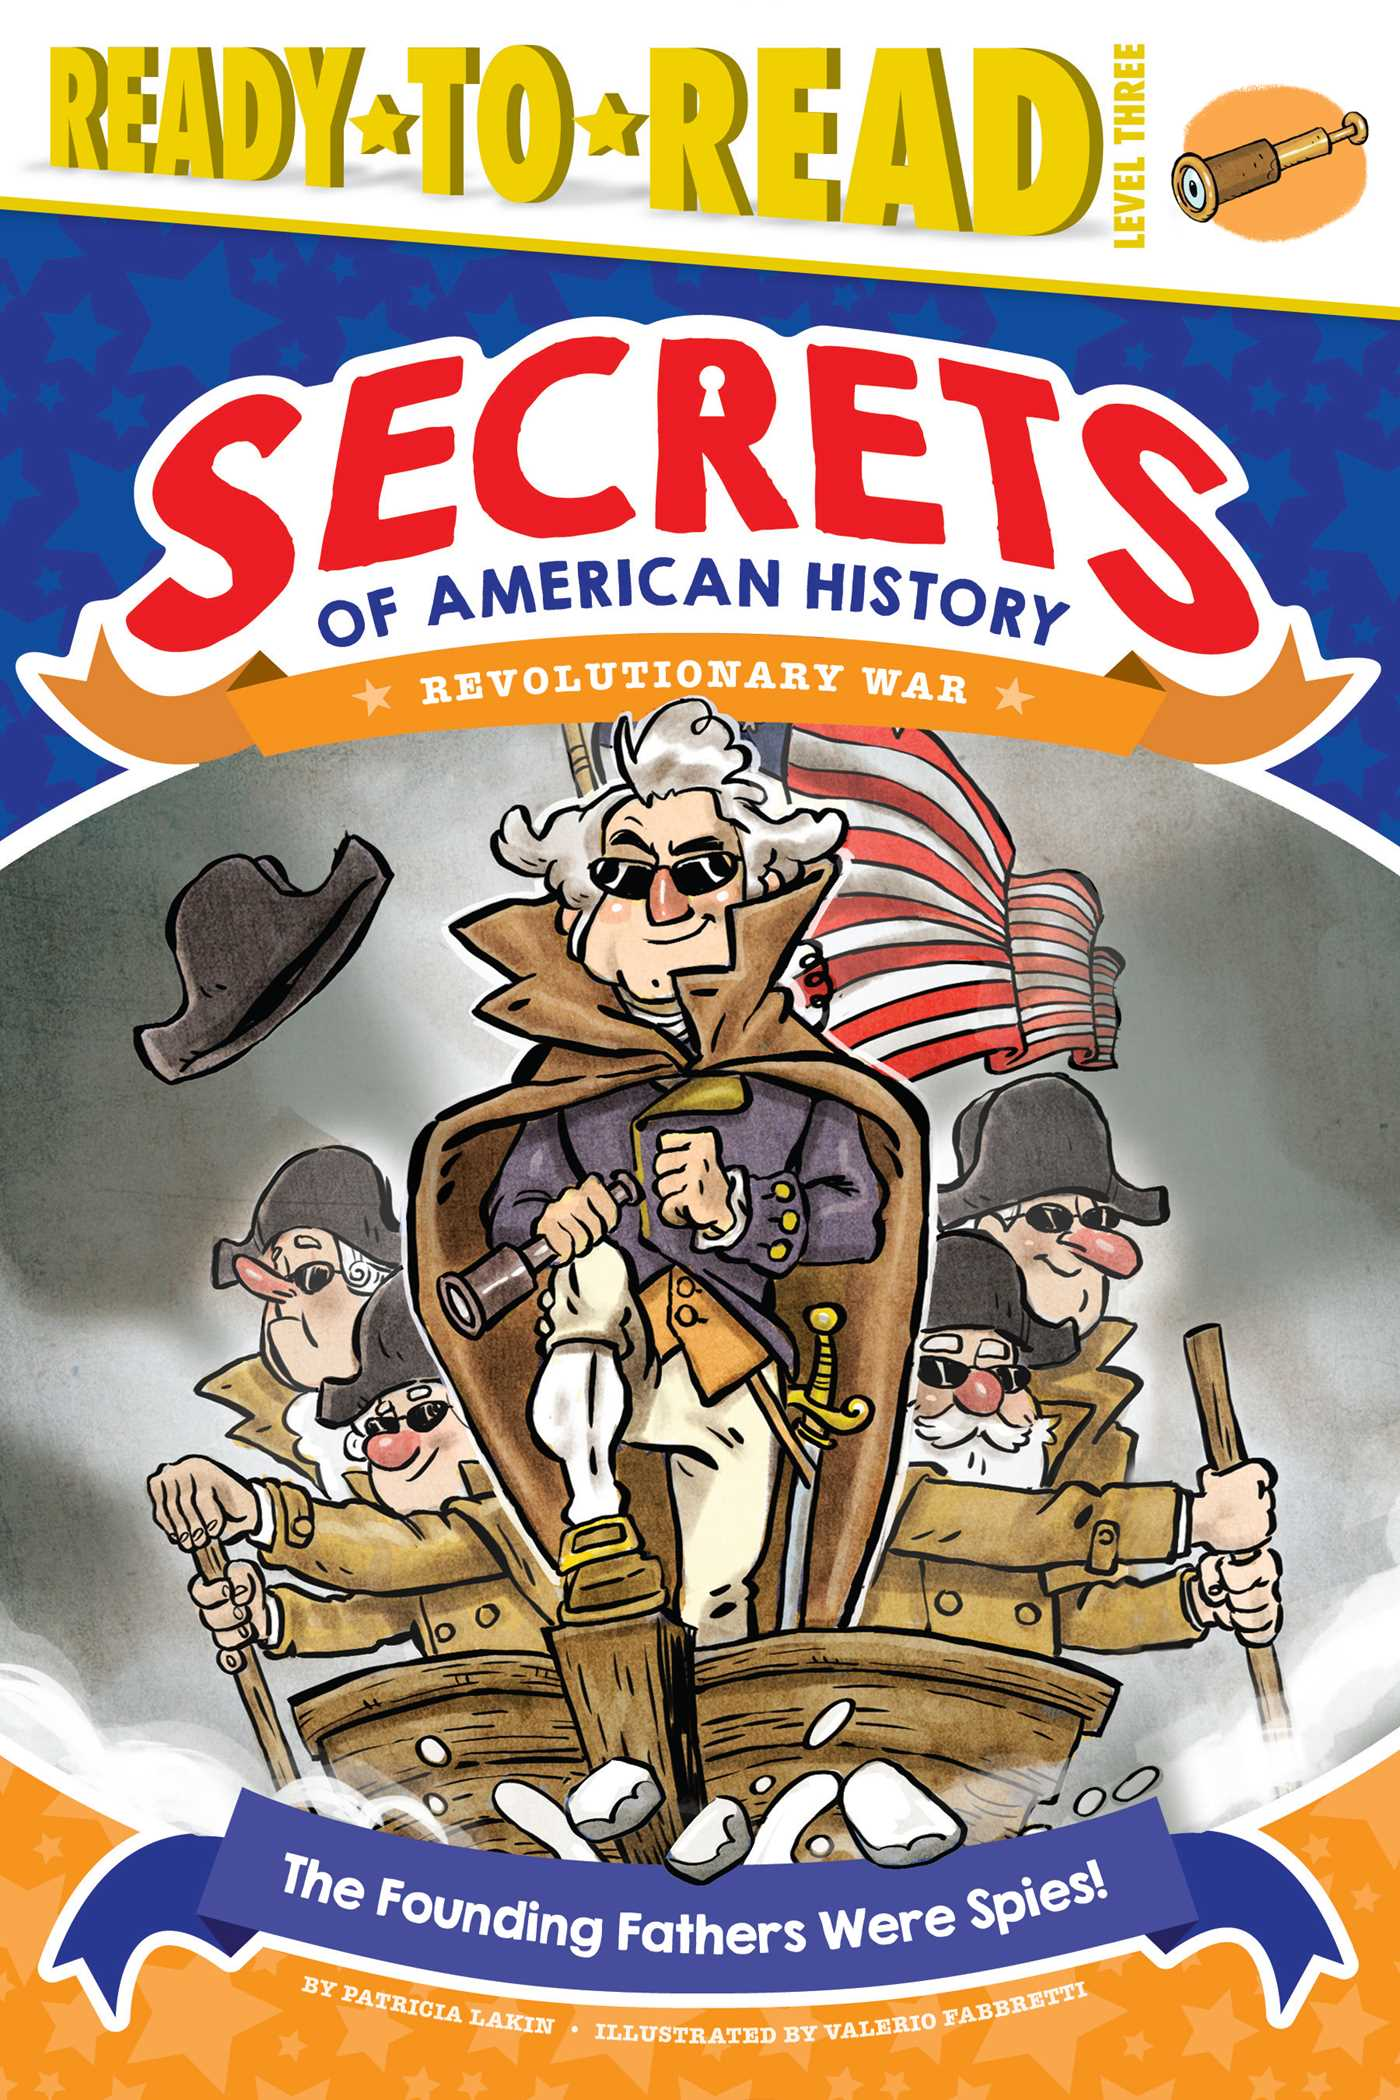 the-founding-fathers-were-spies-9781481499699_hr.jpg